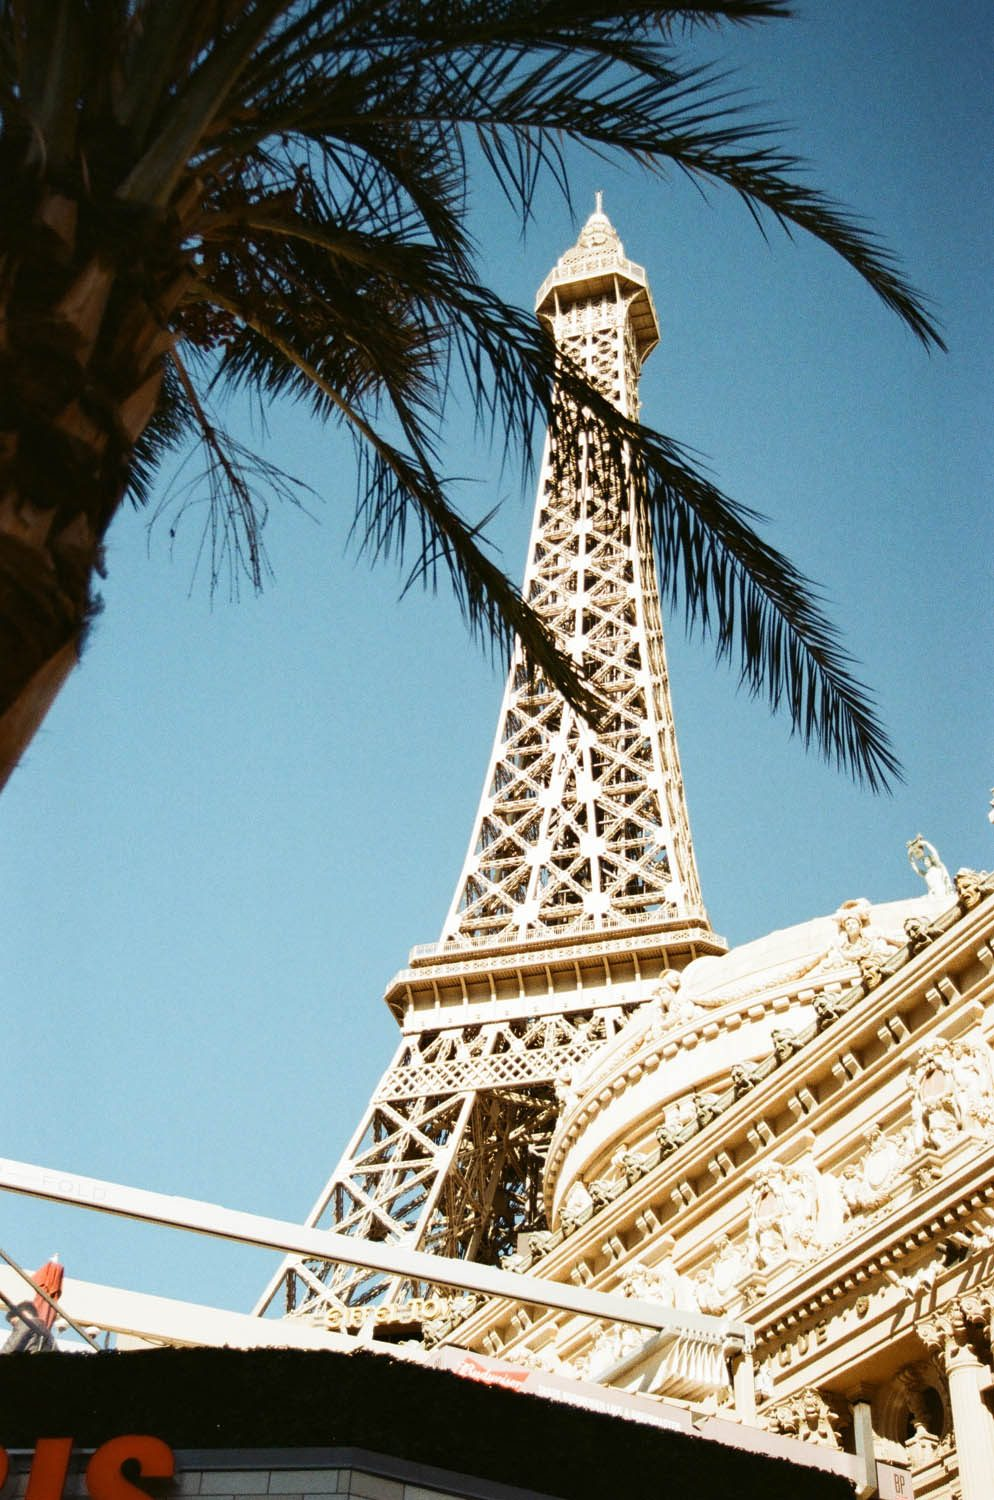 The Eiffel Tower on the Las Vegas Strip. Expired Kodak Gold 200, Pushed 1 stop. Guessing the expiration date was 15-20 years ago, but not sure.